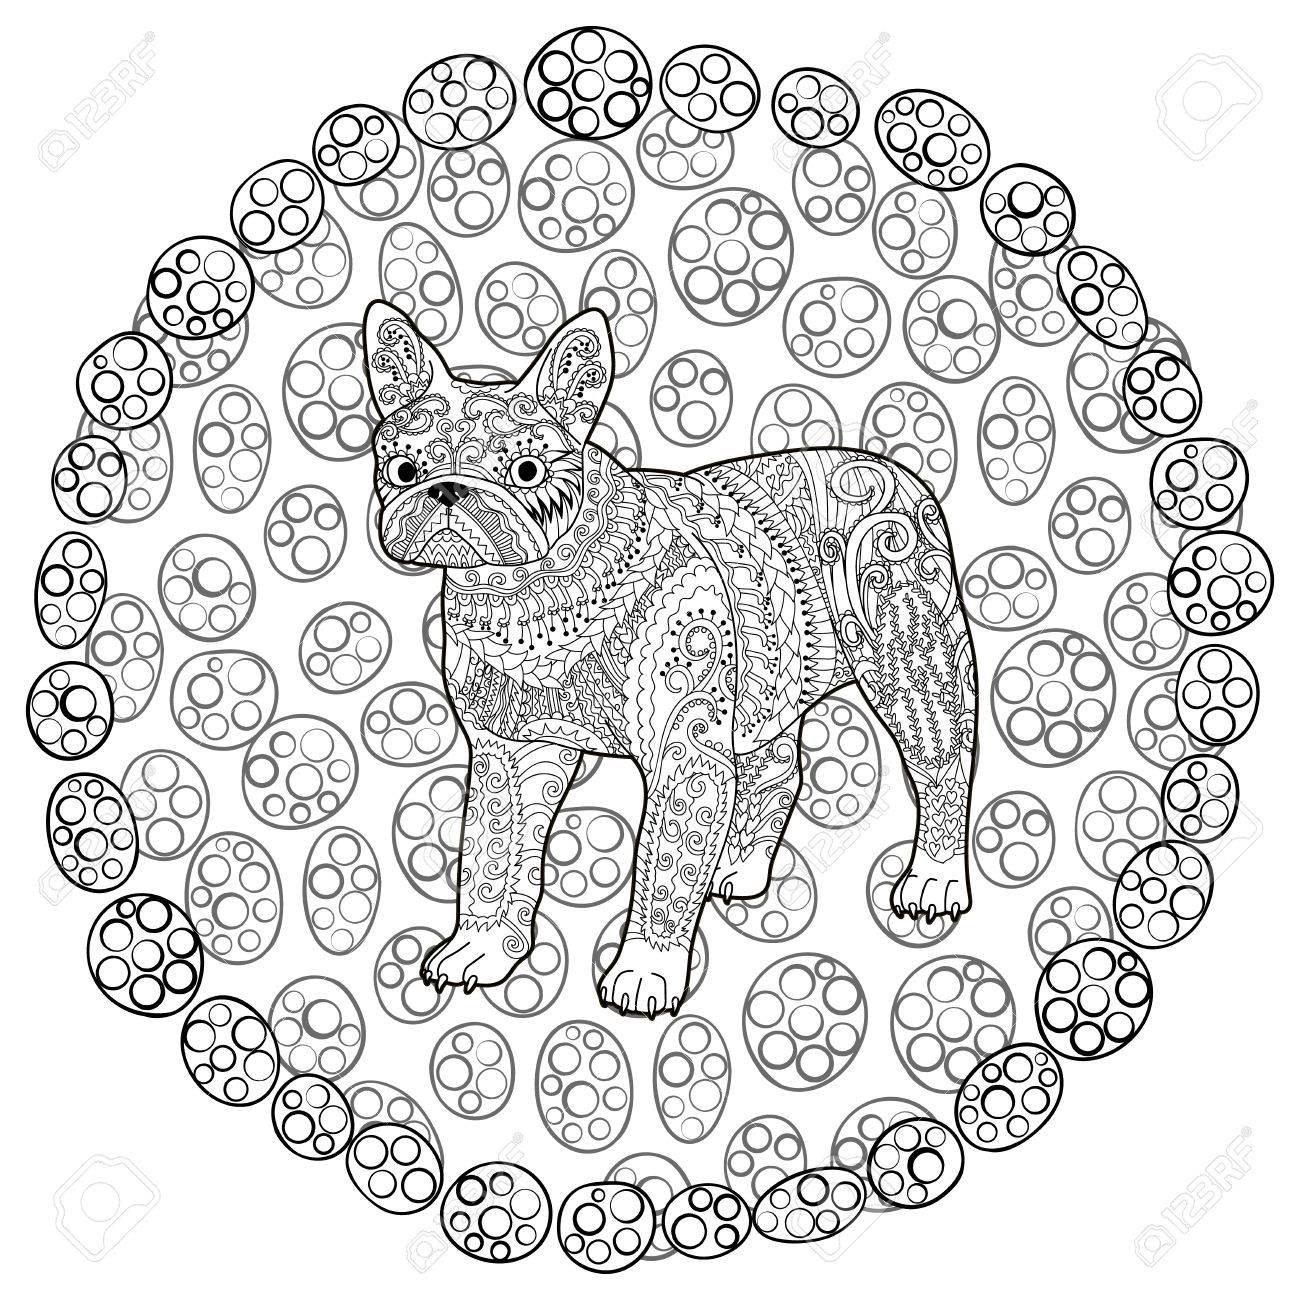 high detail patterned french bulldog in style coloring